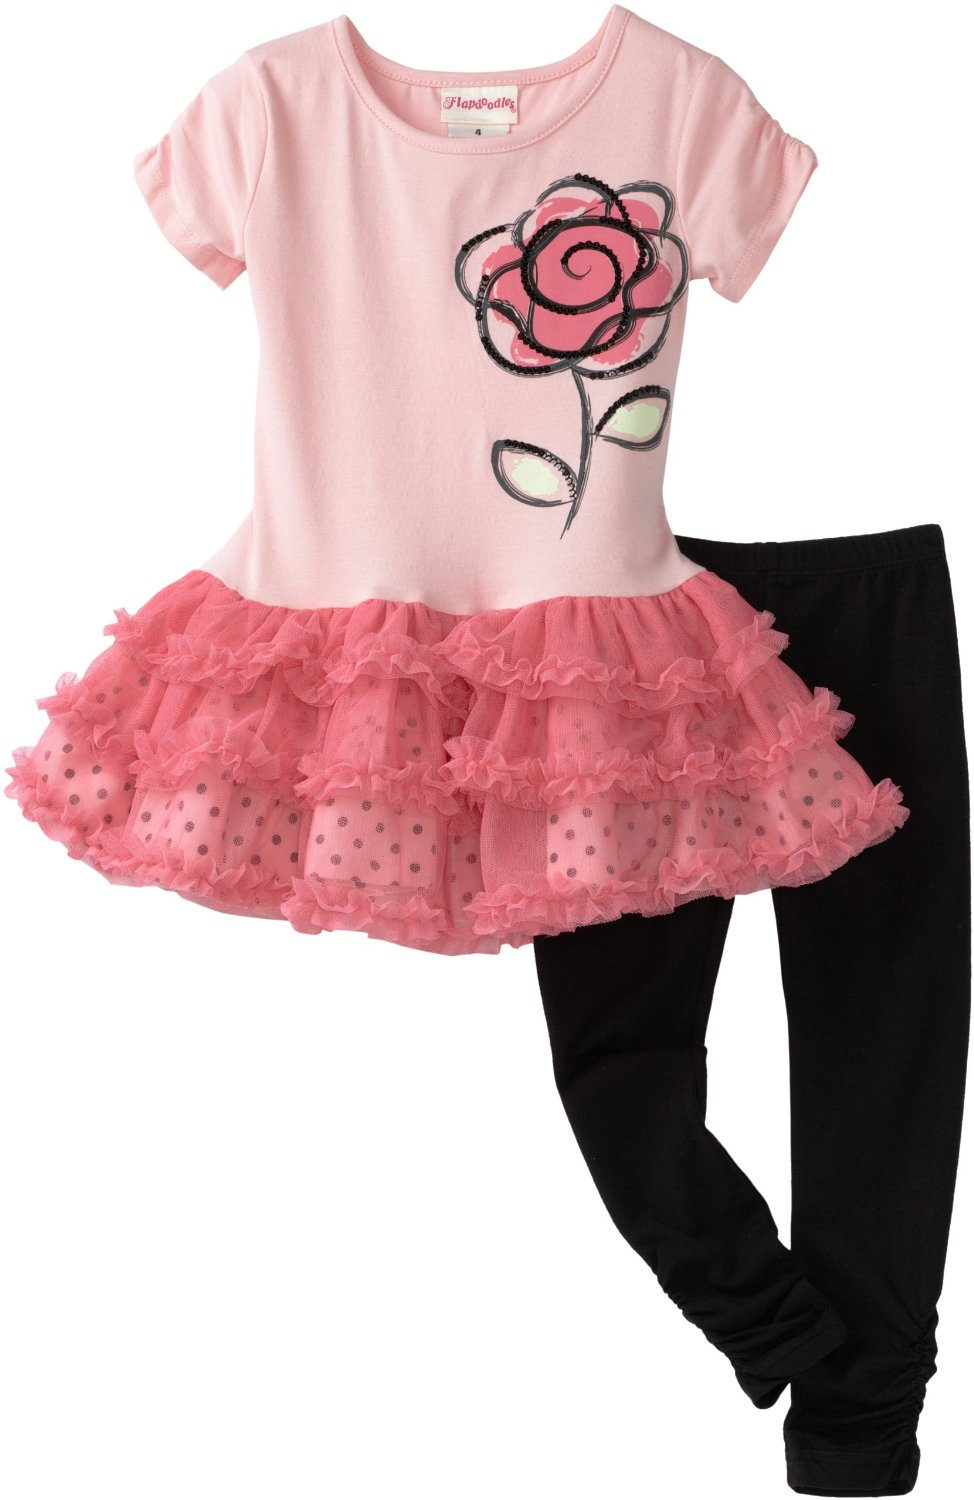 flapdoodles rose ballerina dress